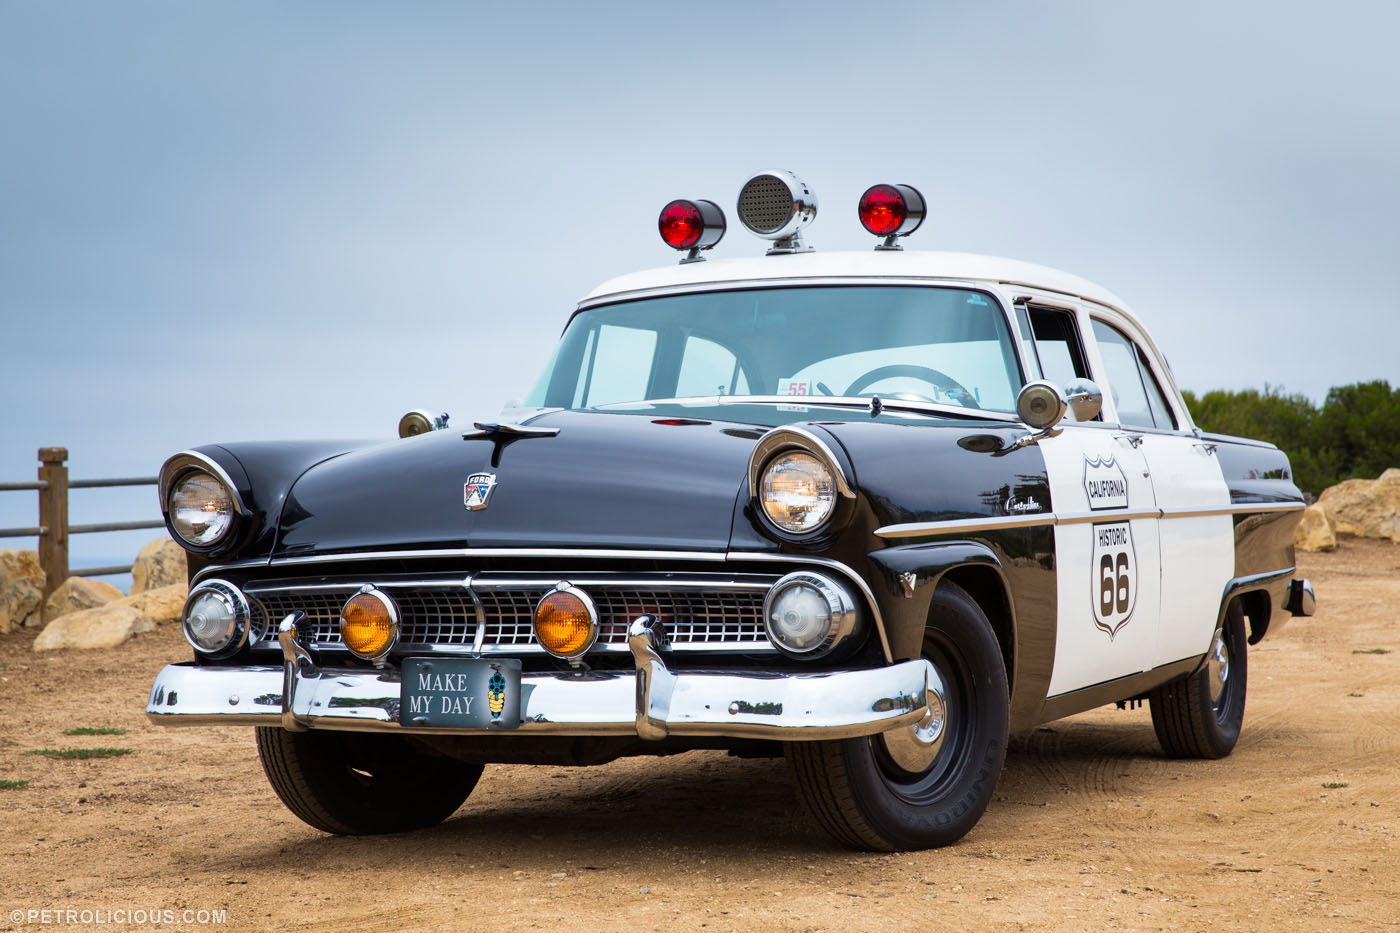 Design Your Own Home Ireland Grab A Dozen Donuts In This Original 55 Ford Police Car